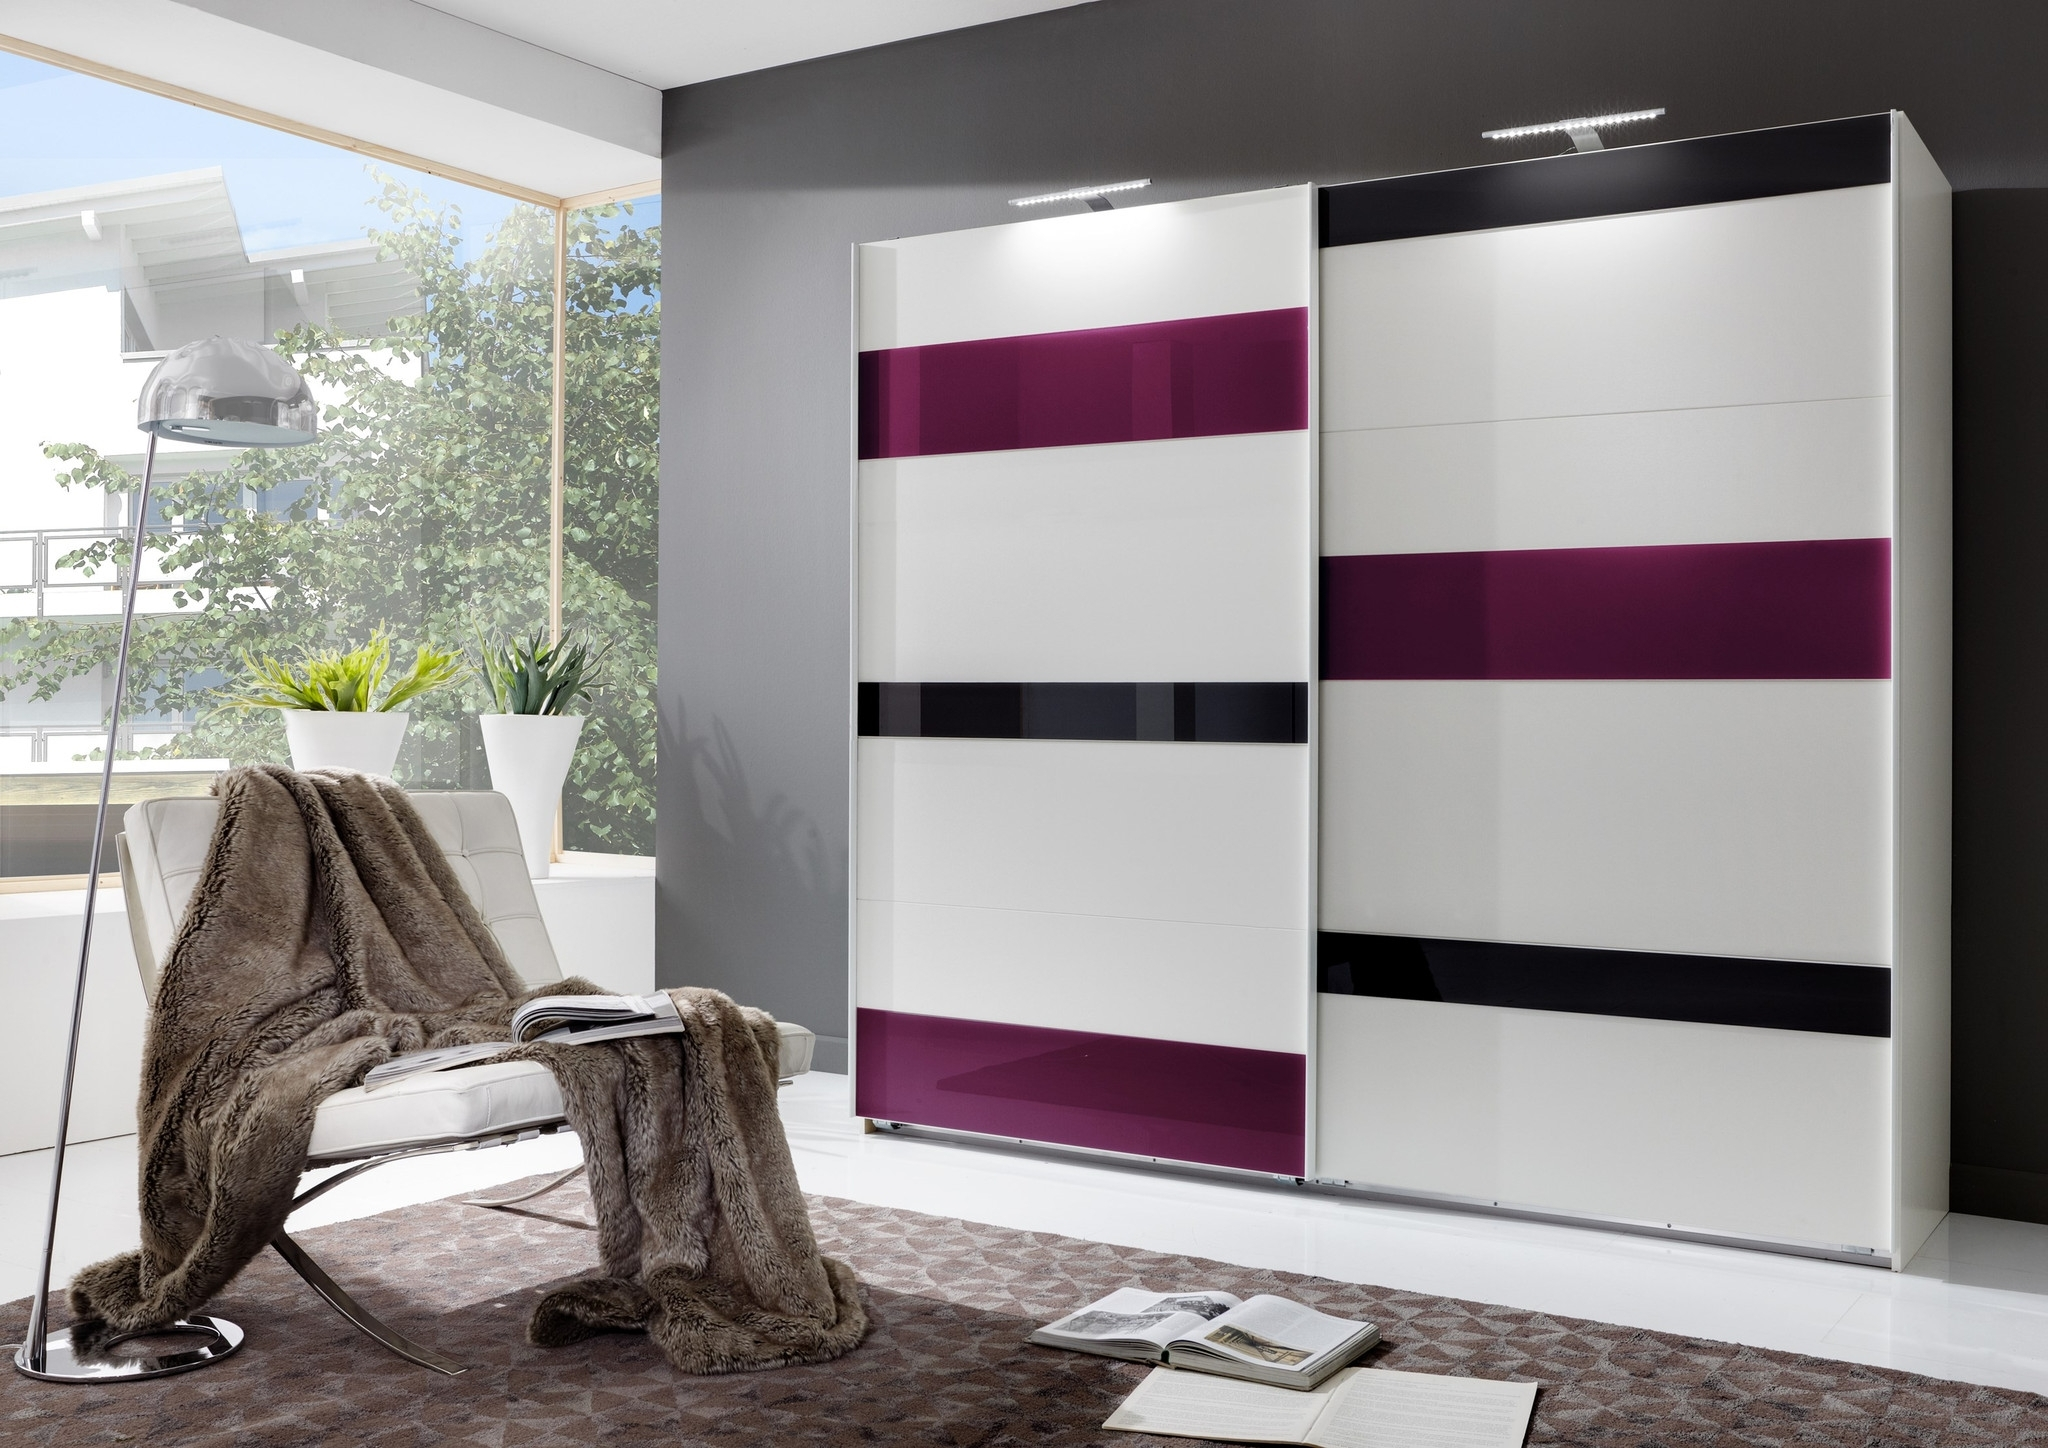 White High Gloss Sliding Wardrobes Inside Favorite Black High Gloss Sliding Wardrobe Doors White Wardrobes That Can (View 13 of 15)